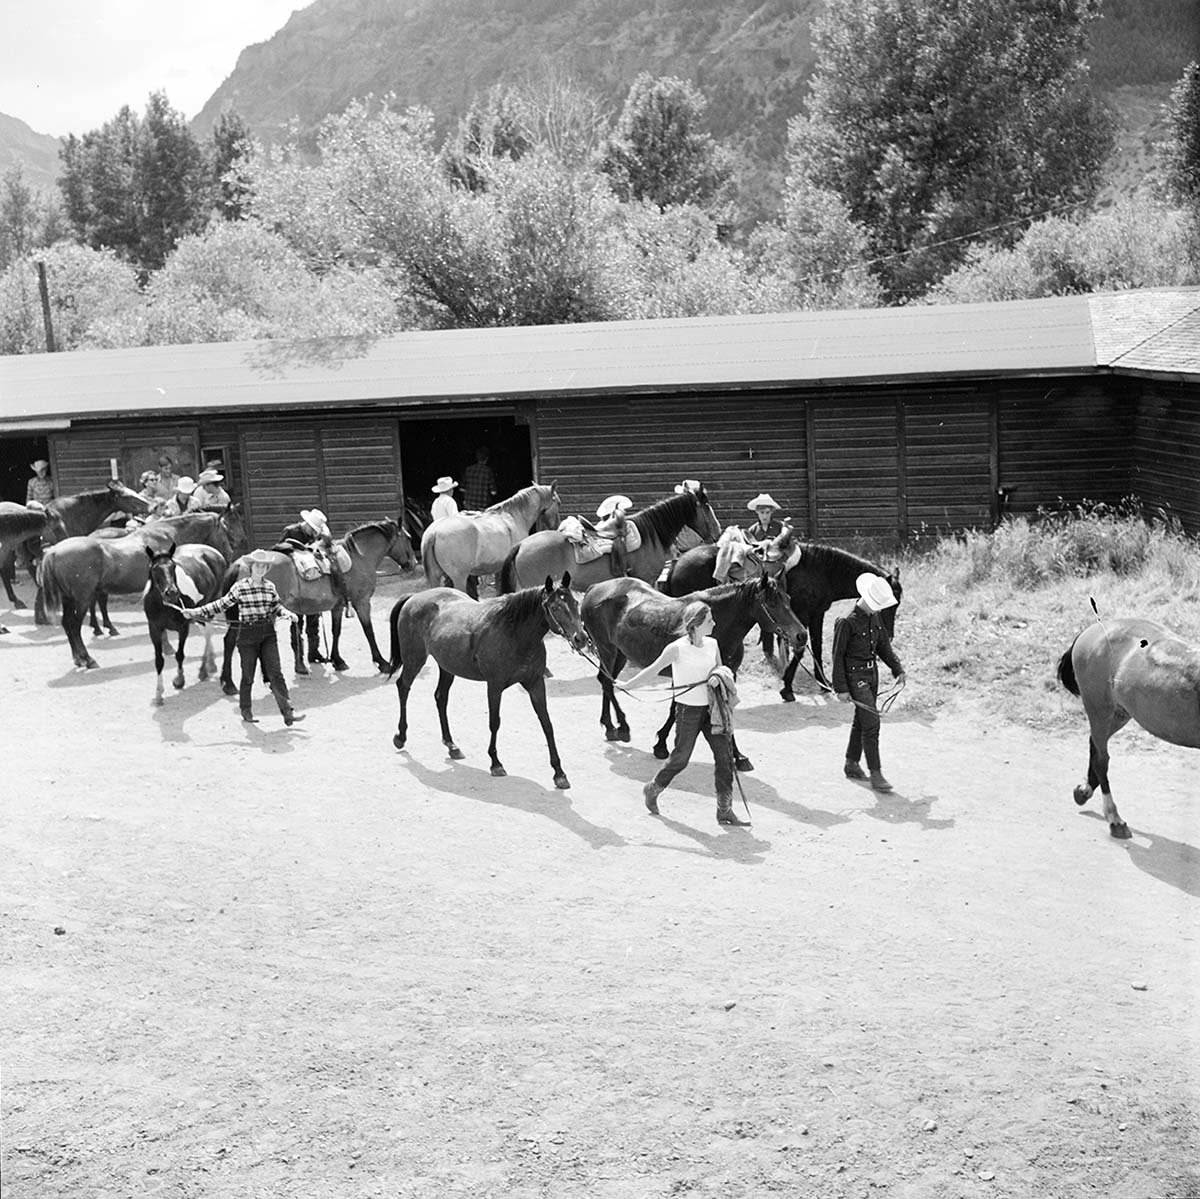 Guests with horses at Valley Ranch, with Absaroka Mountains in background. MS 89 Jack Richard Photograph Collection. P.89.37.8200.18-N